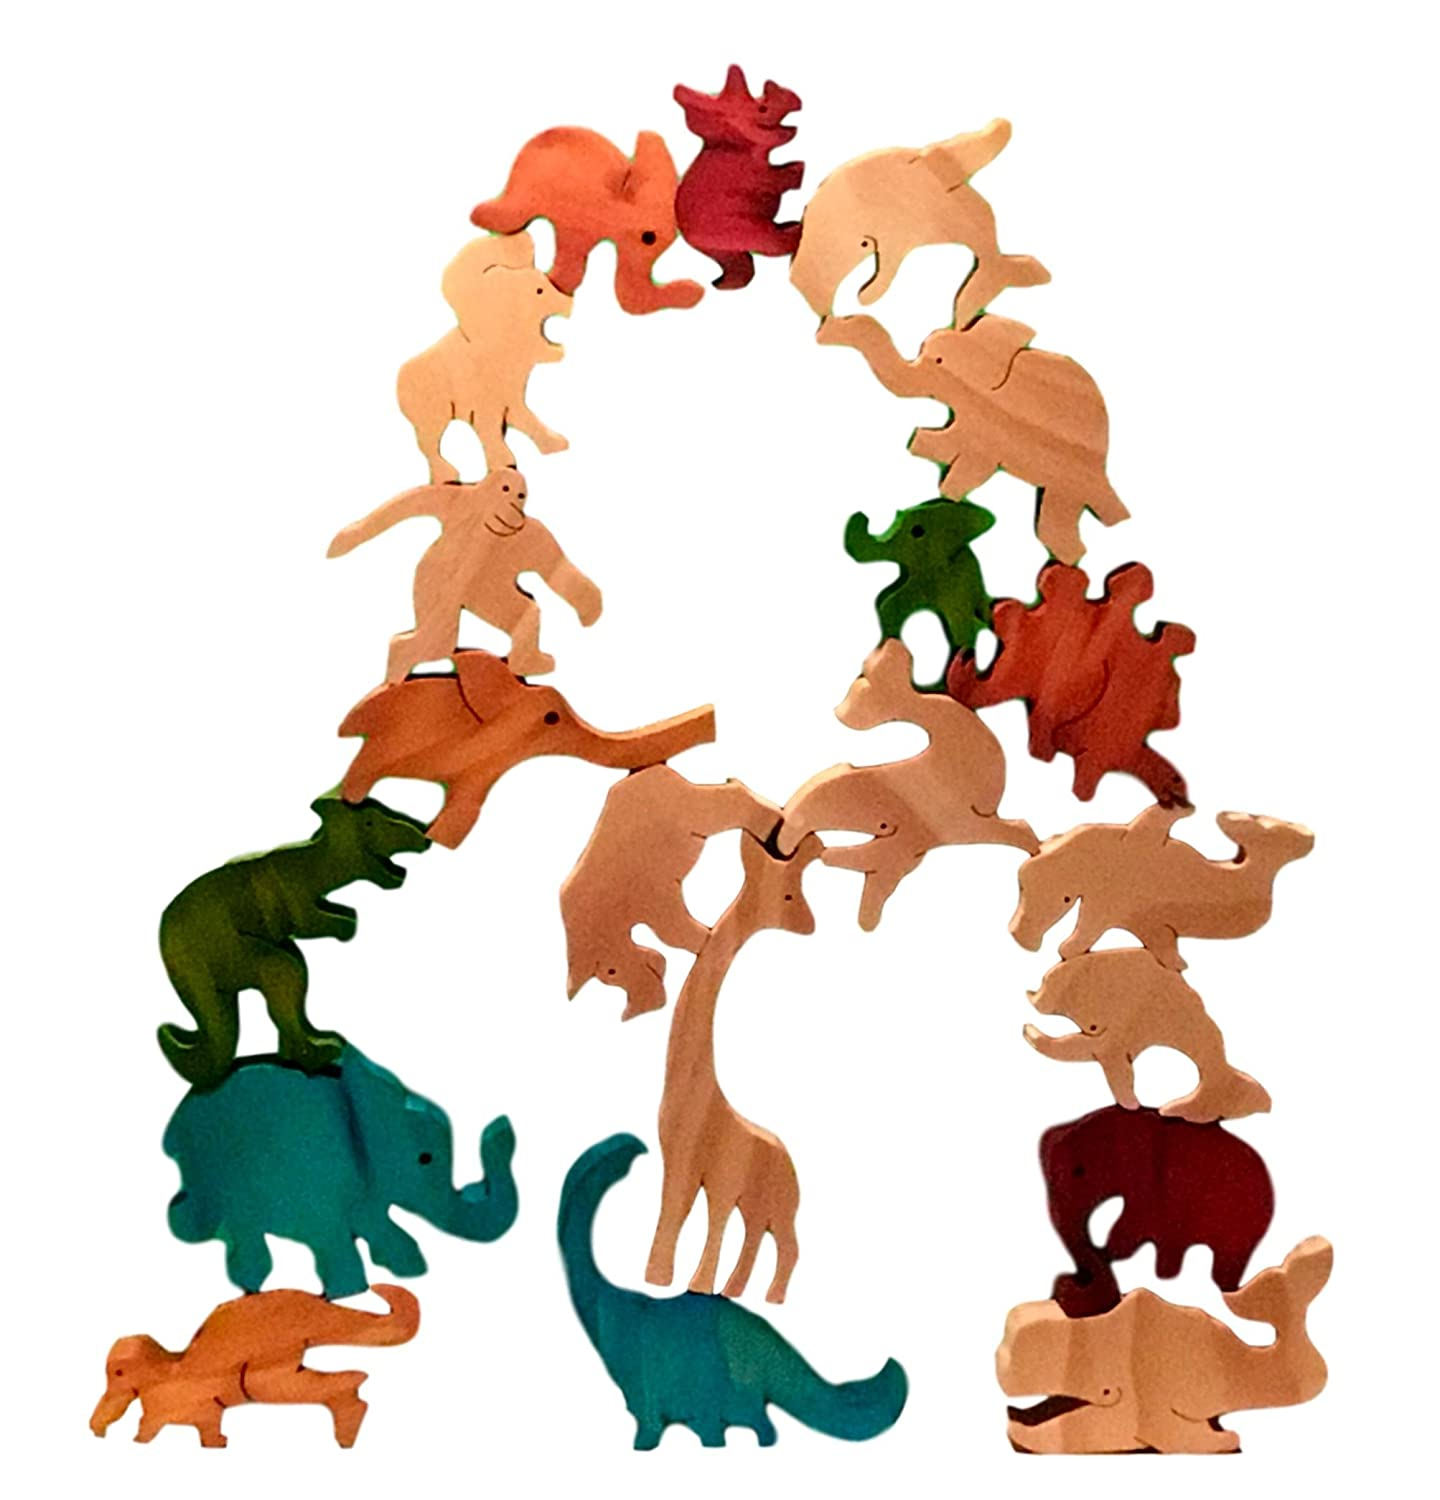 Whales TARATA Balancing Animals Made From NZ Farm Forested Radiata Pine In Gift Box Natural Wood